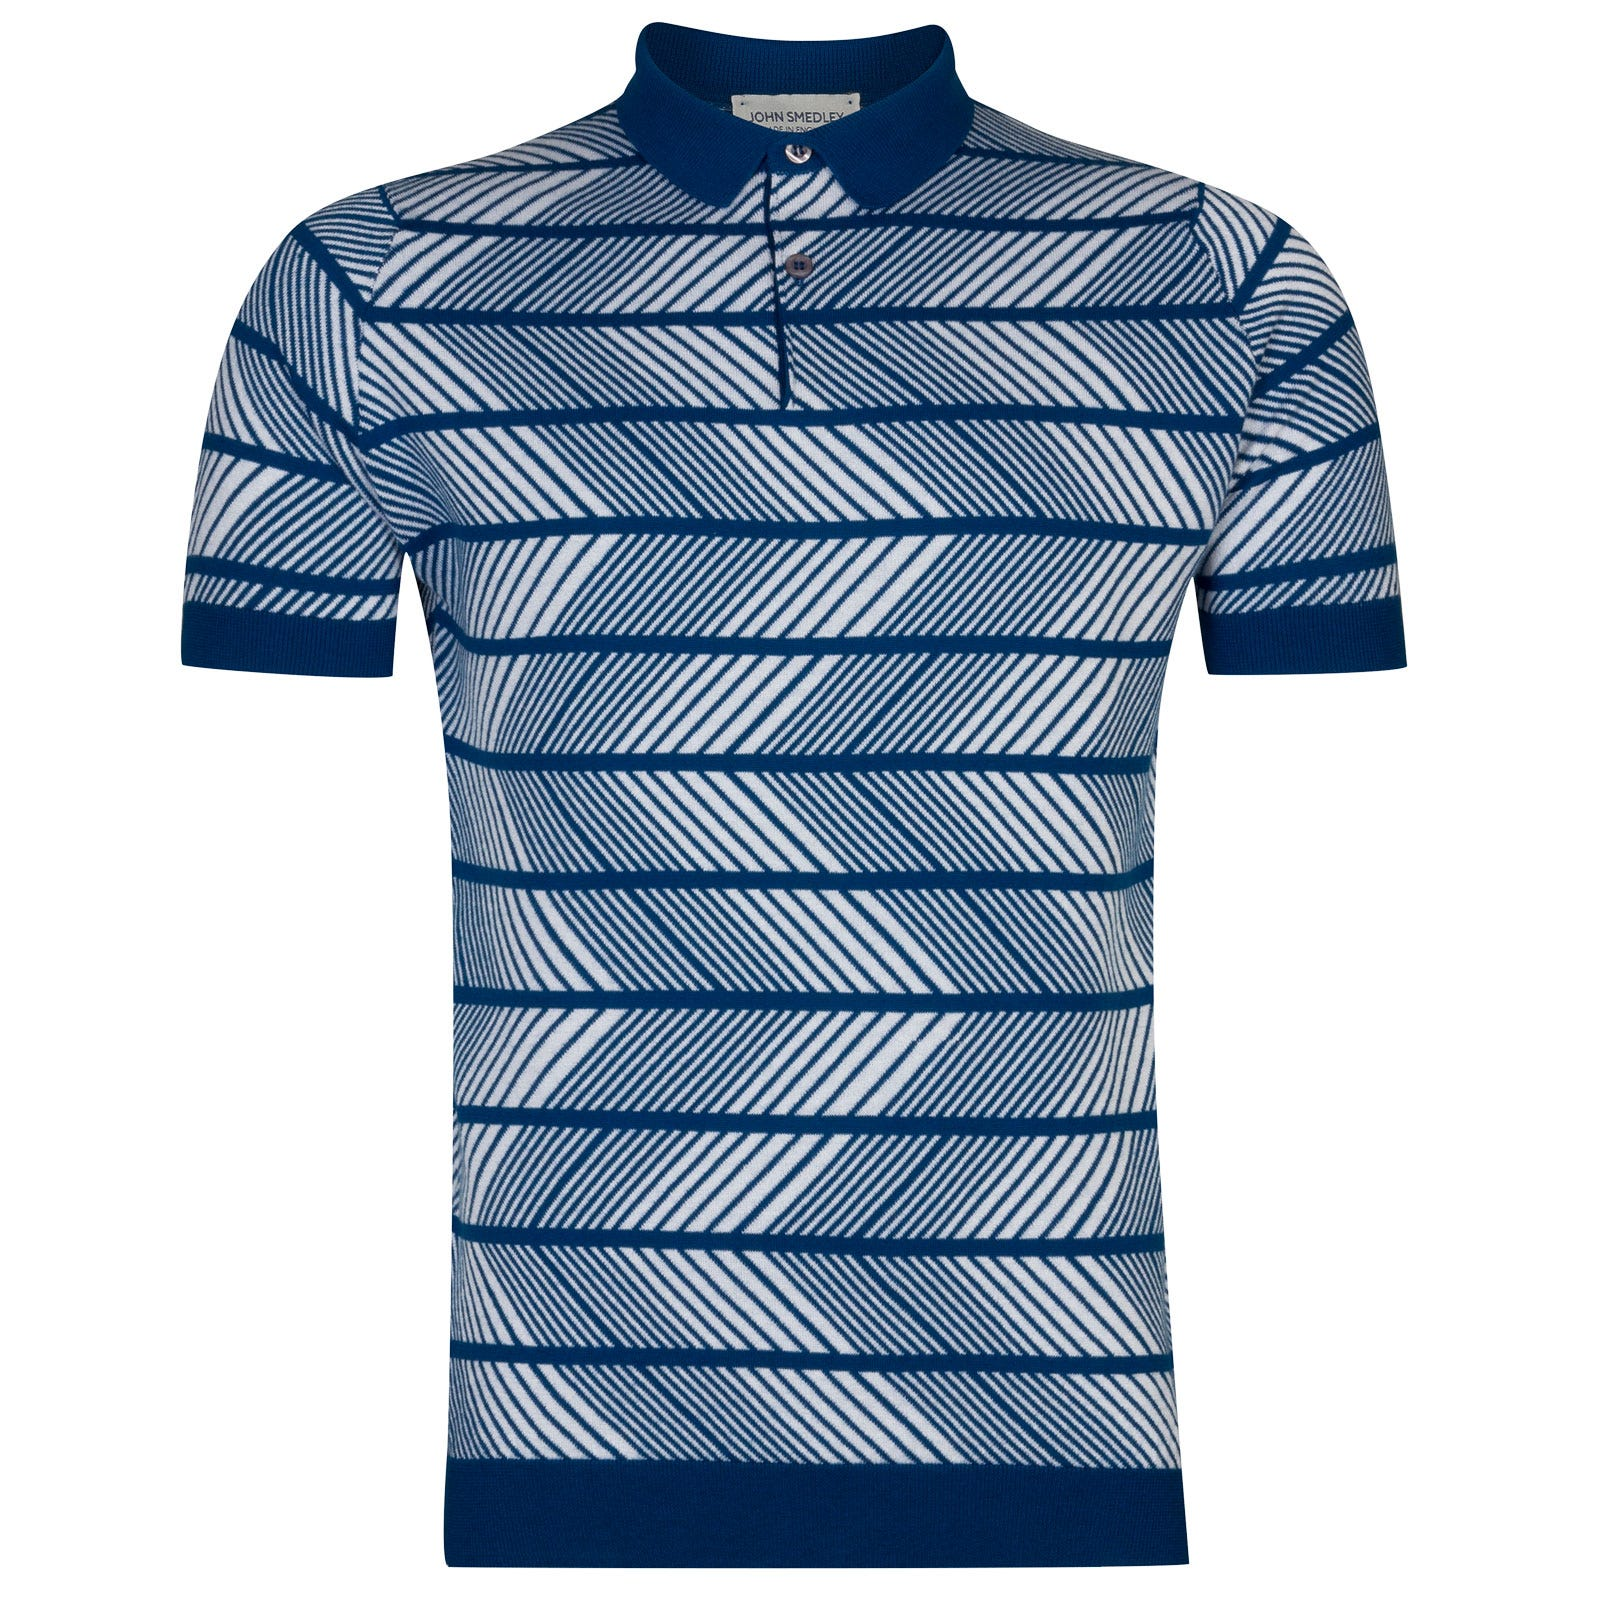 John Smedley Hermann in Stevens Blue/White-S